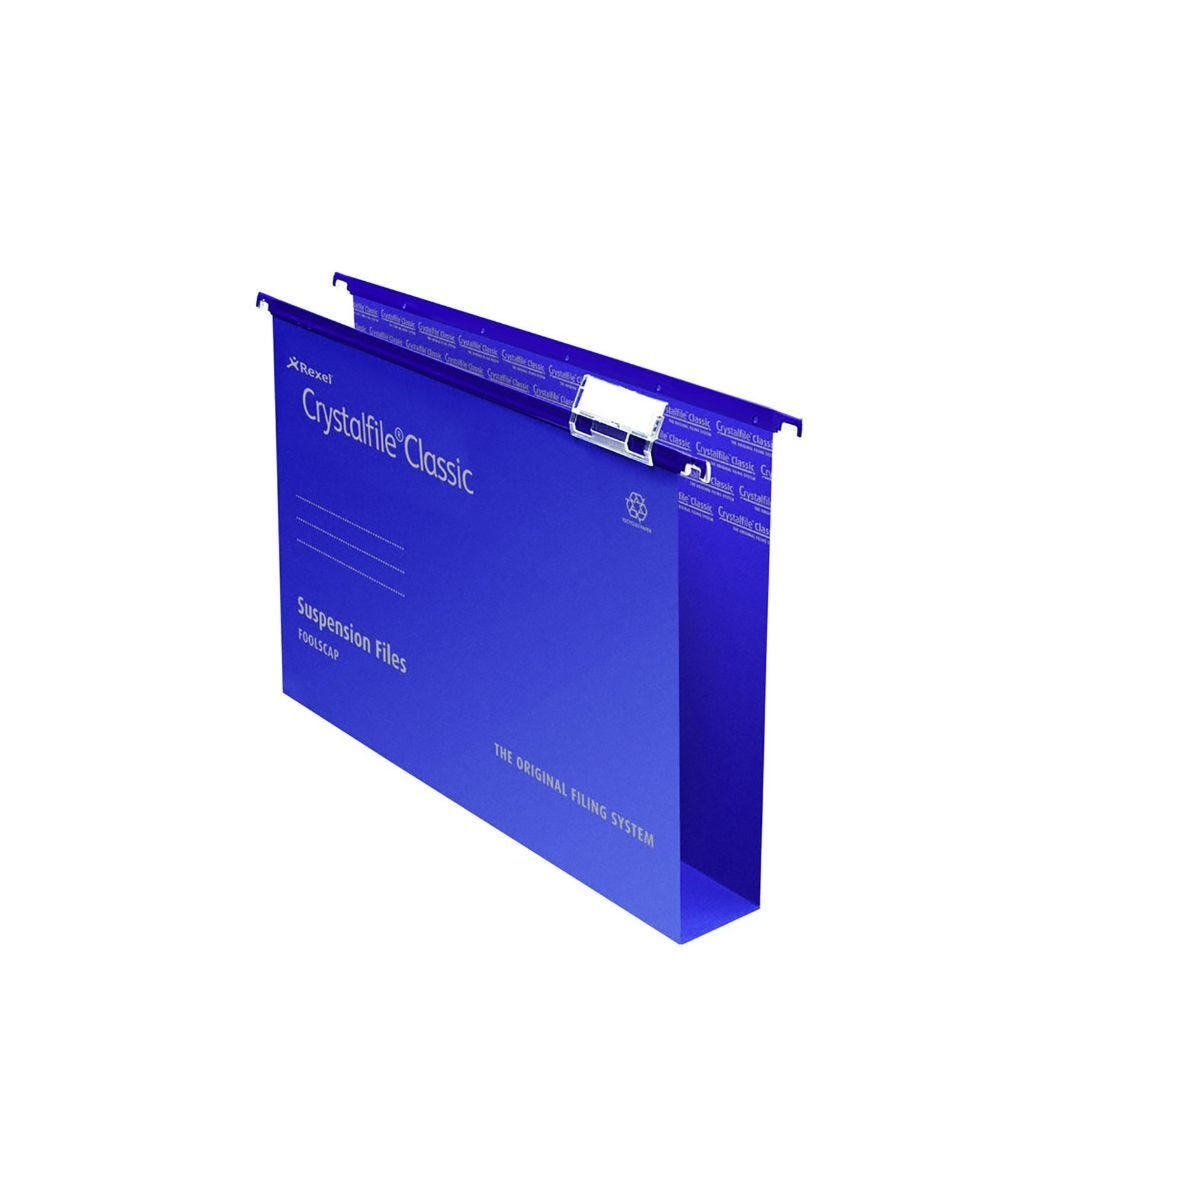 Rexel Crystalfile Classic Foolscap Suspension File 50mm Pack of 50 Blue